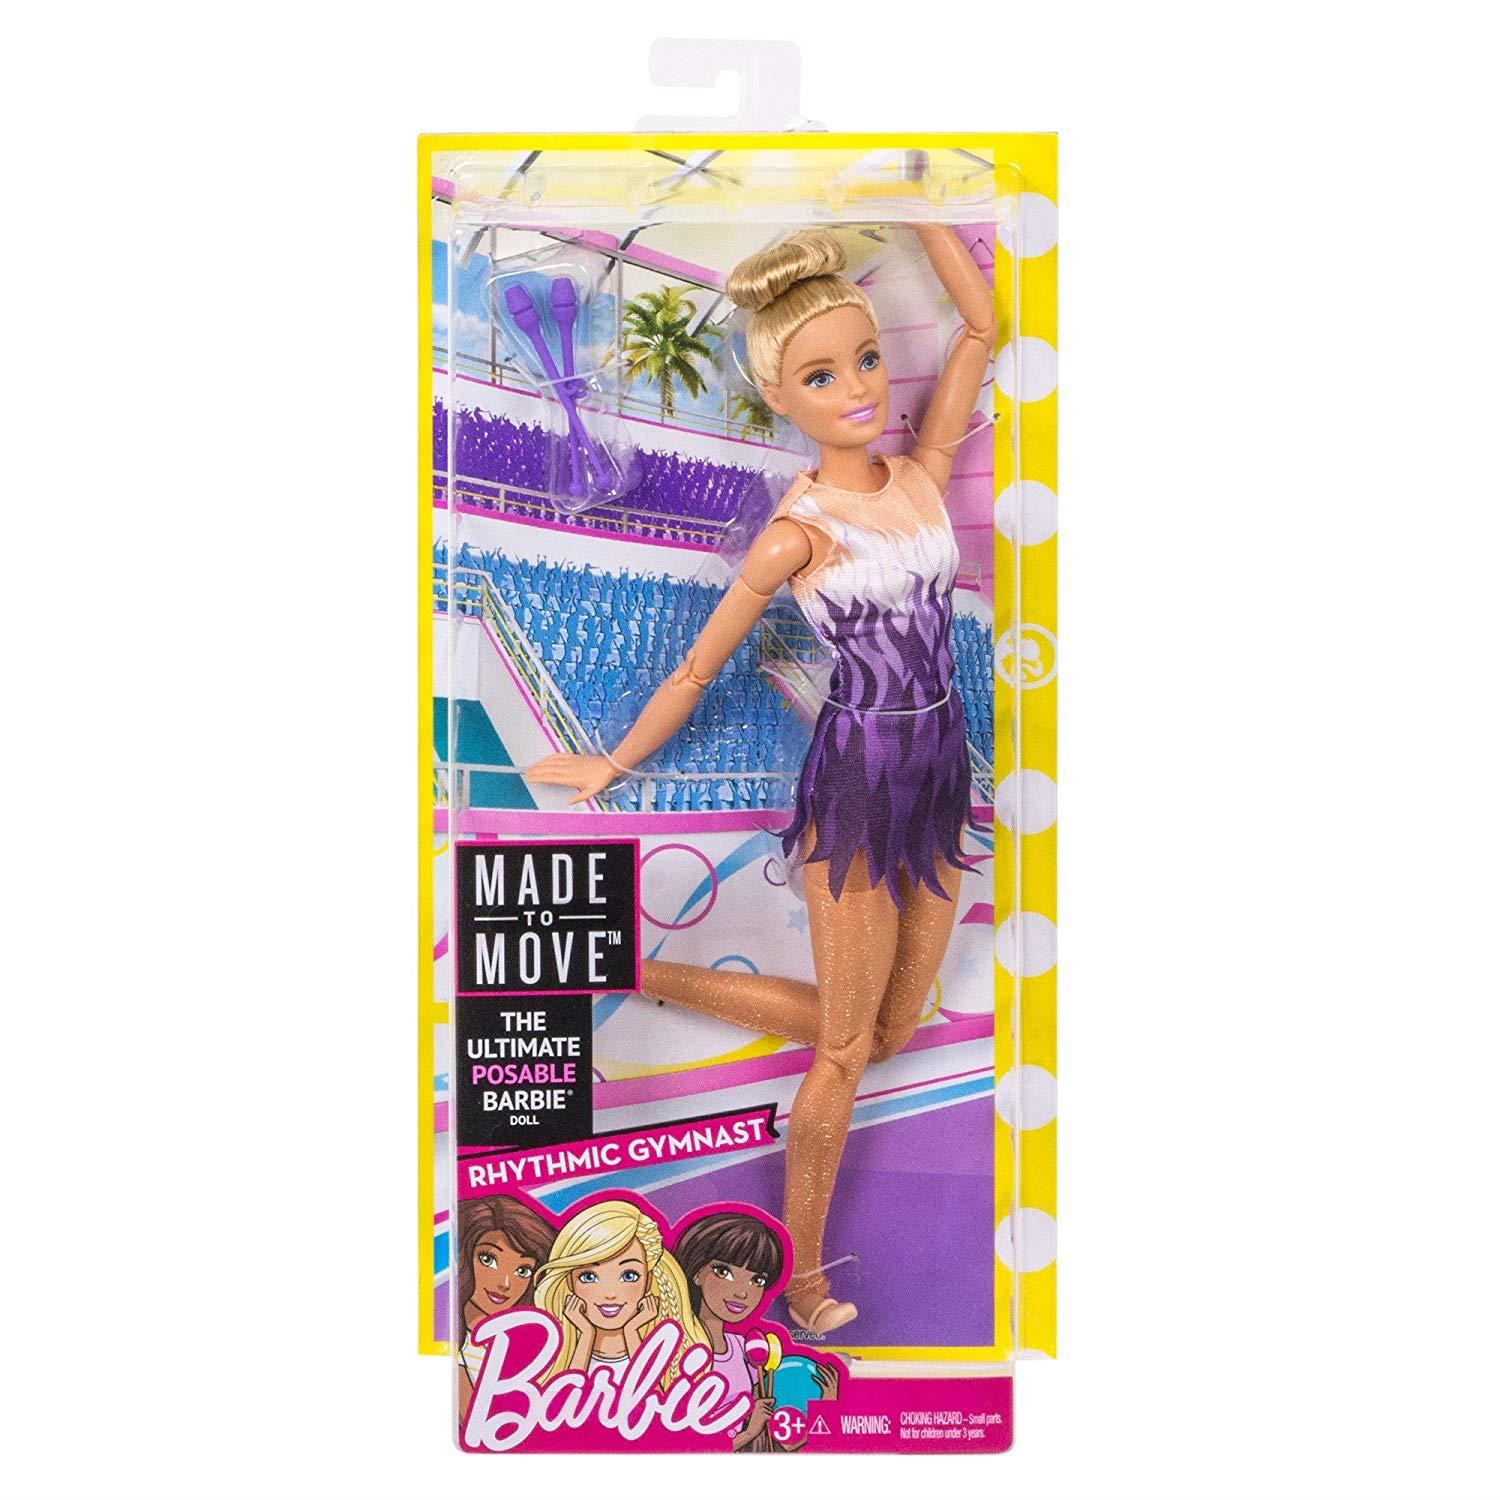 Barbie-Made-to-Move-Collectable-Careers-Fashion-Dolls thumbnail 18